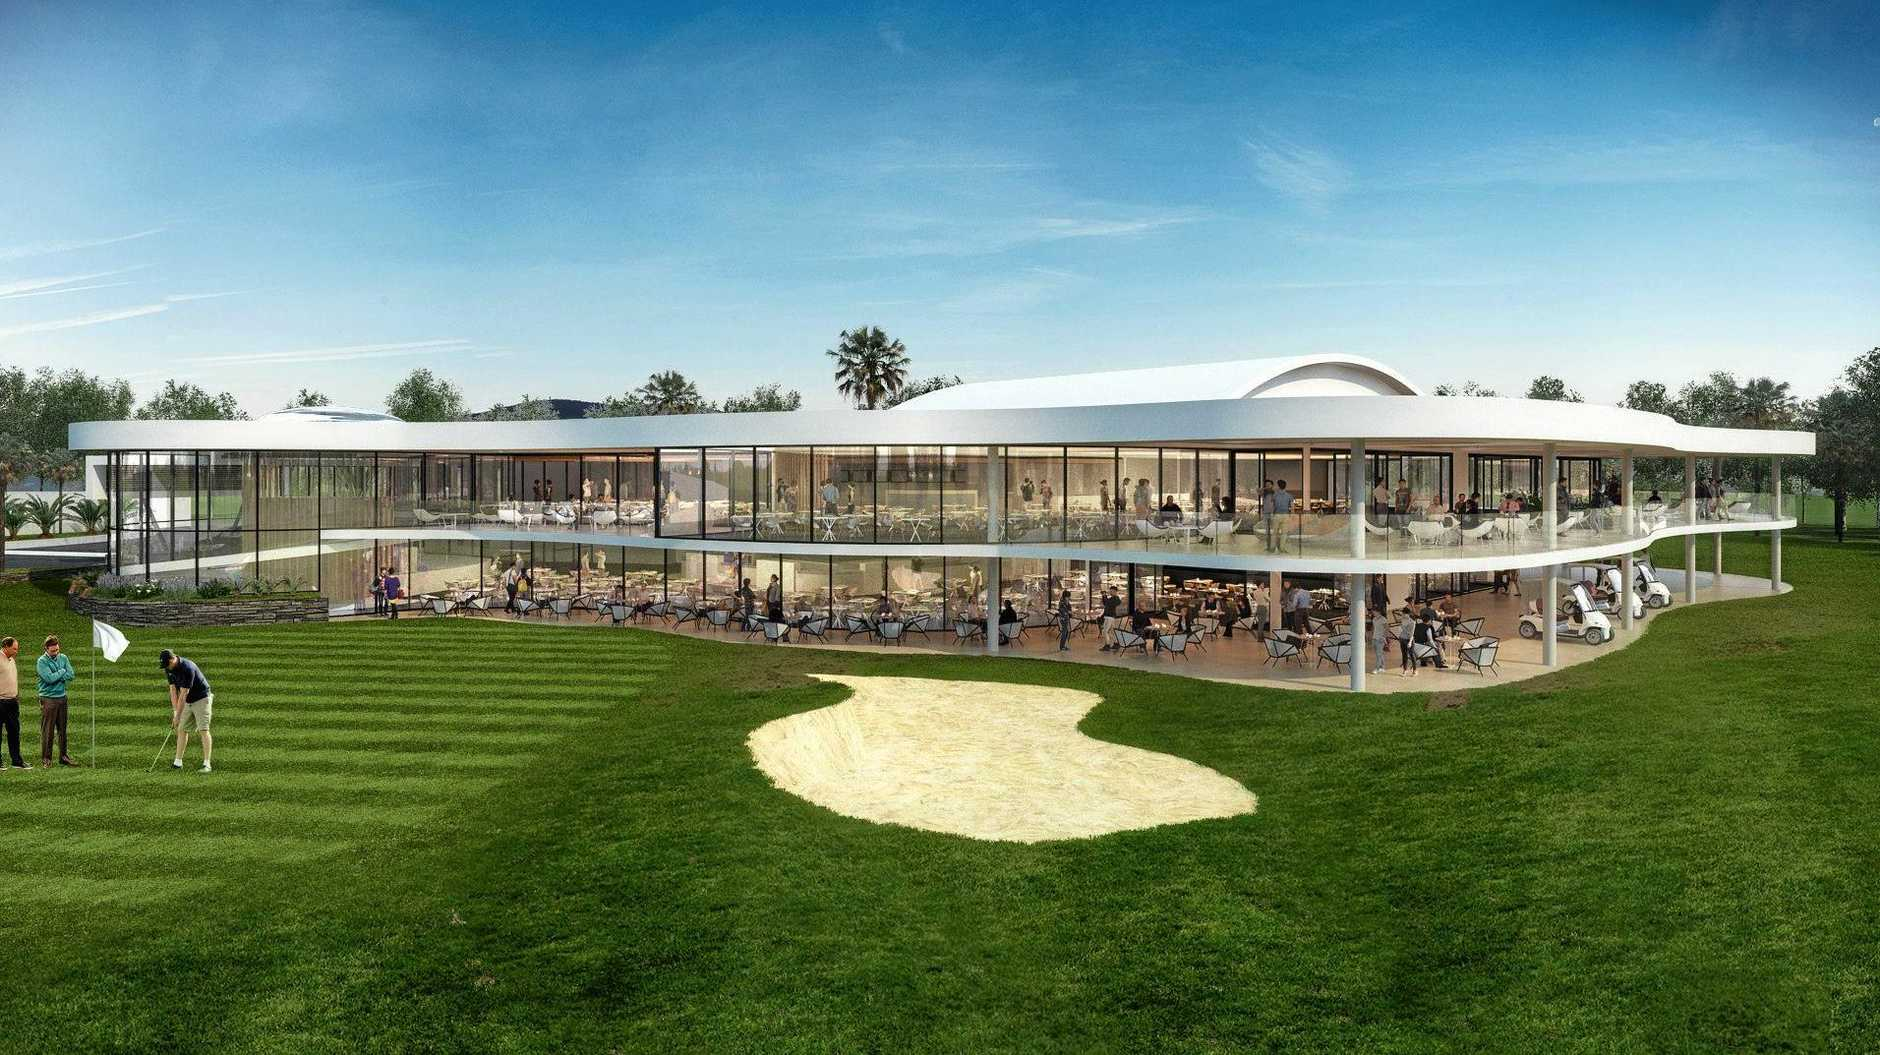 BIG PLANS: An artist's impression of Gympie RSL Club's proposed new golf club venue, which has become a divisive point between the board and its members.